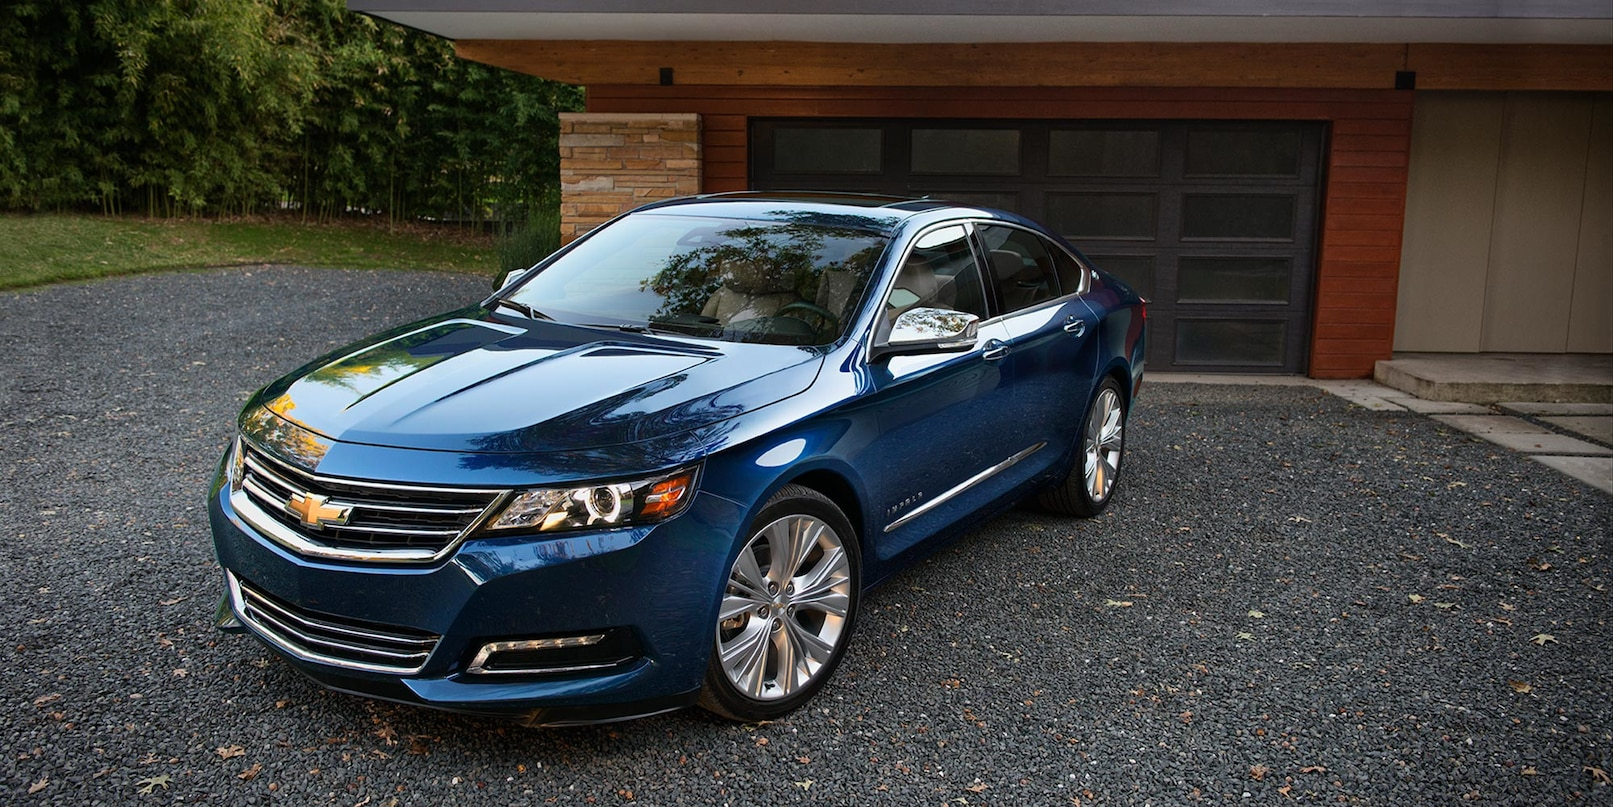 2018 Chevrolet Impala for Sale in Elk Grove, CA